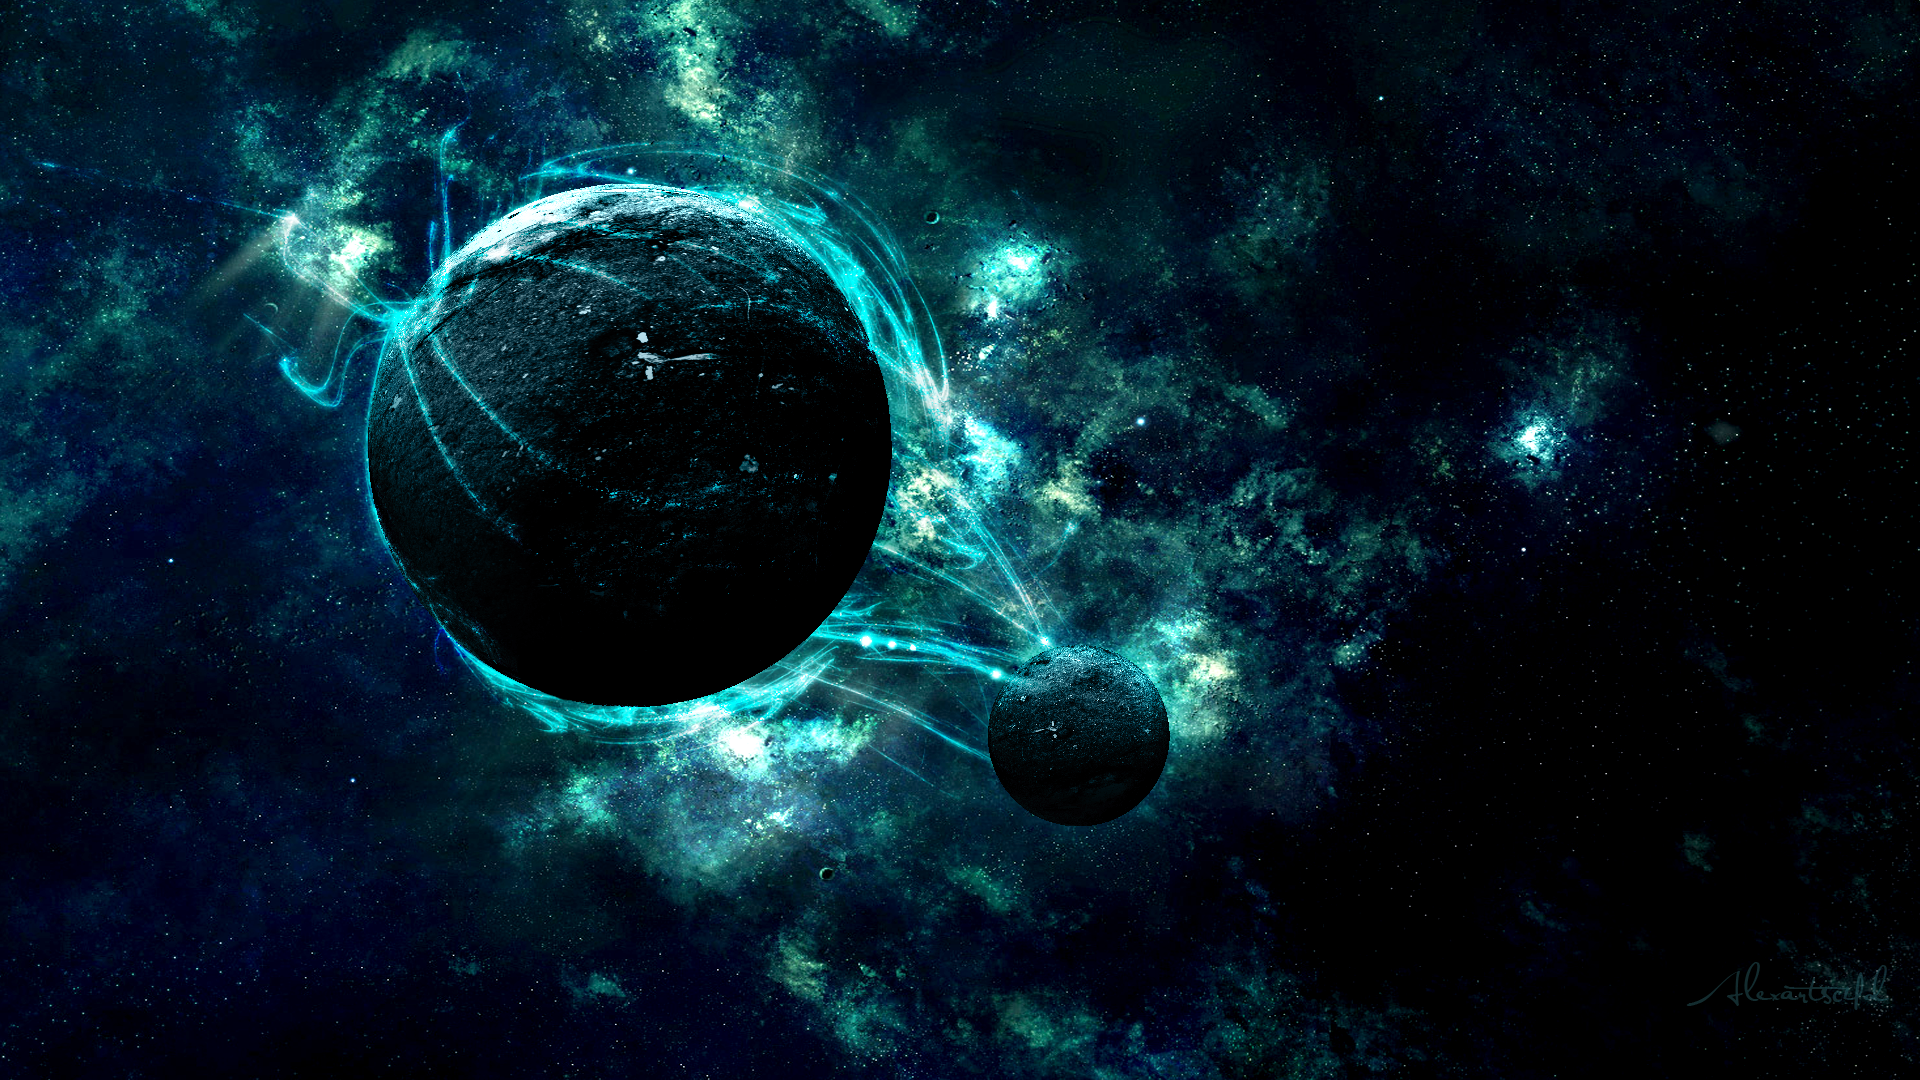 Cool Planet Wallpaper wallpaper wallpaper hd 1920x1080